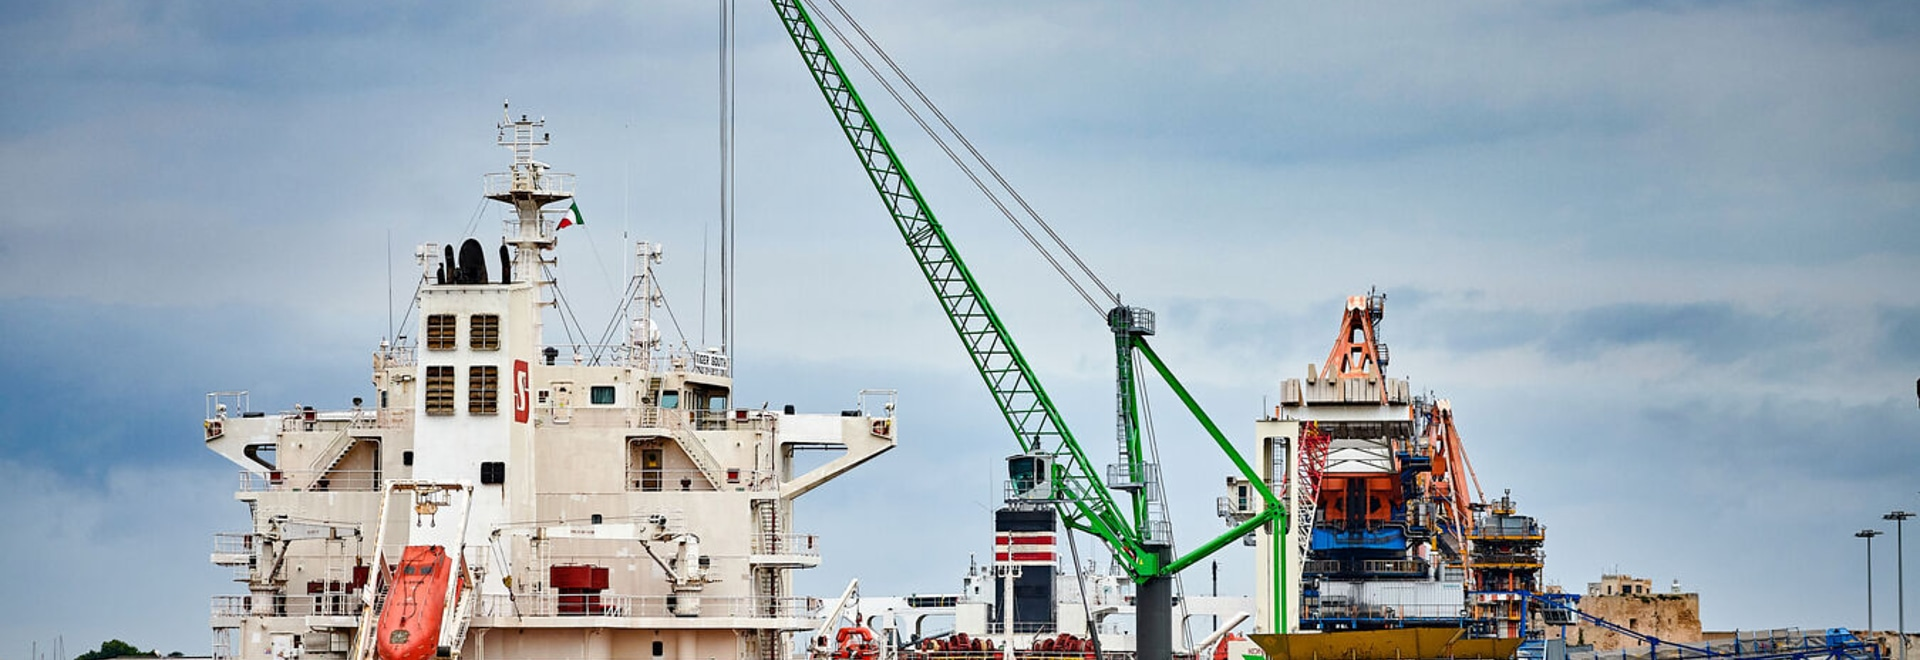 NEW DIMENSIONS IN THE PORT: HARBOUR MOBILE CRANE 9300 E NOW IN OPERATION IN ITALY